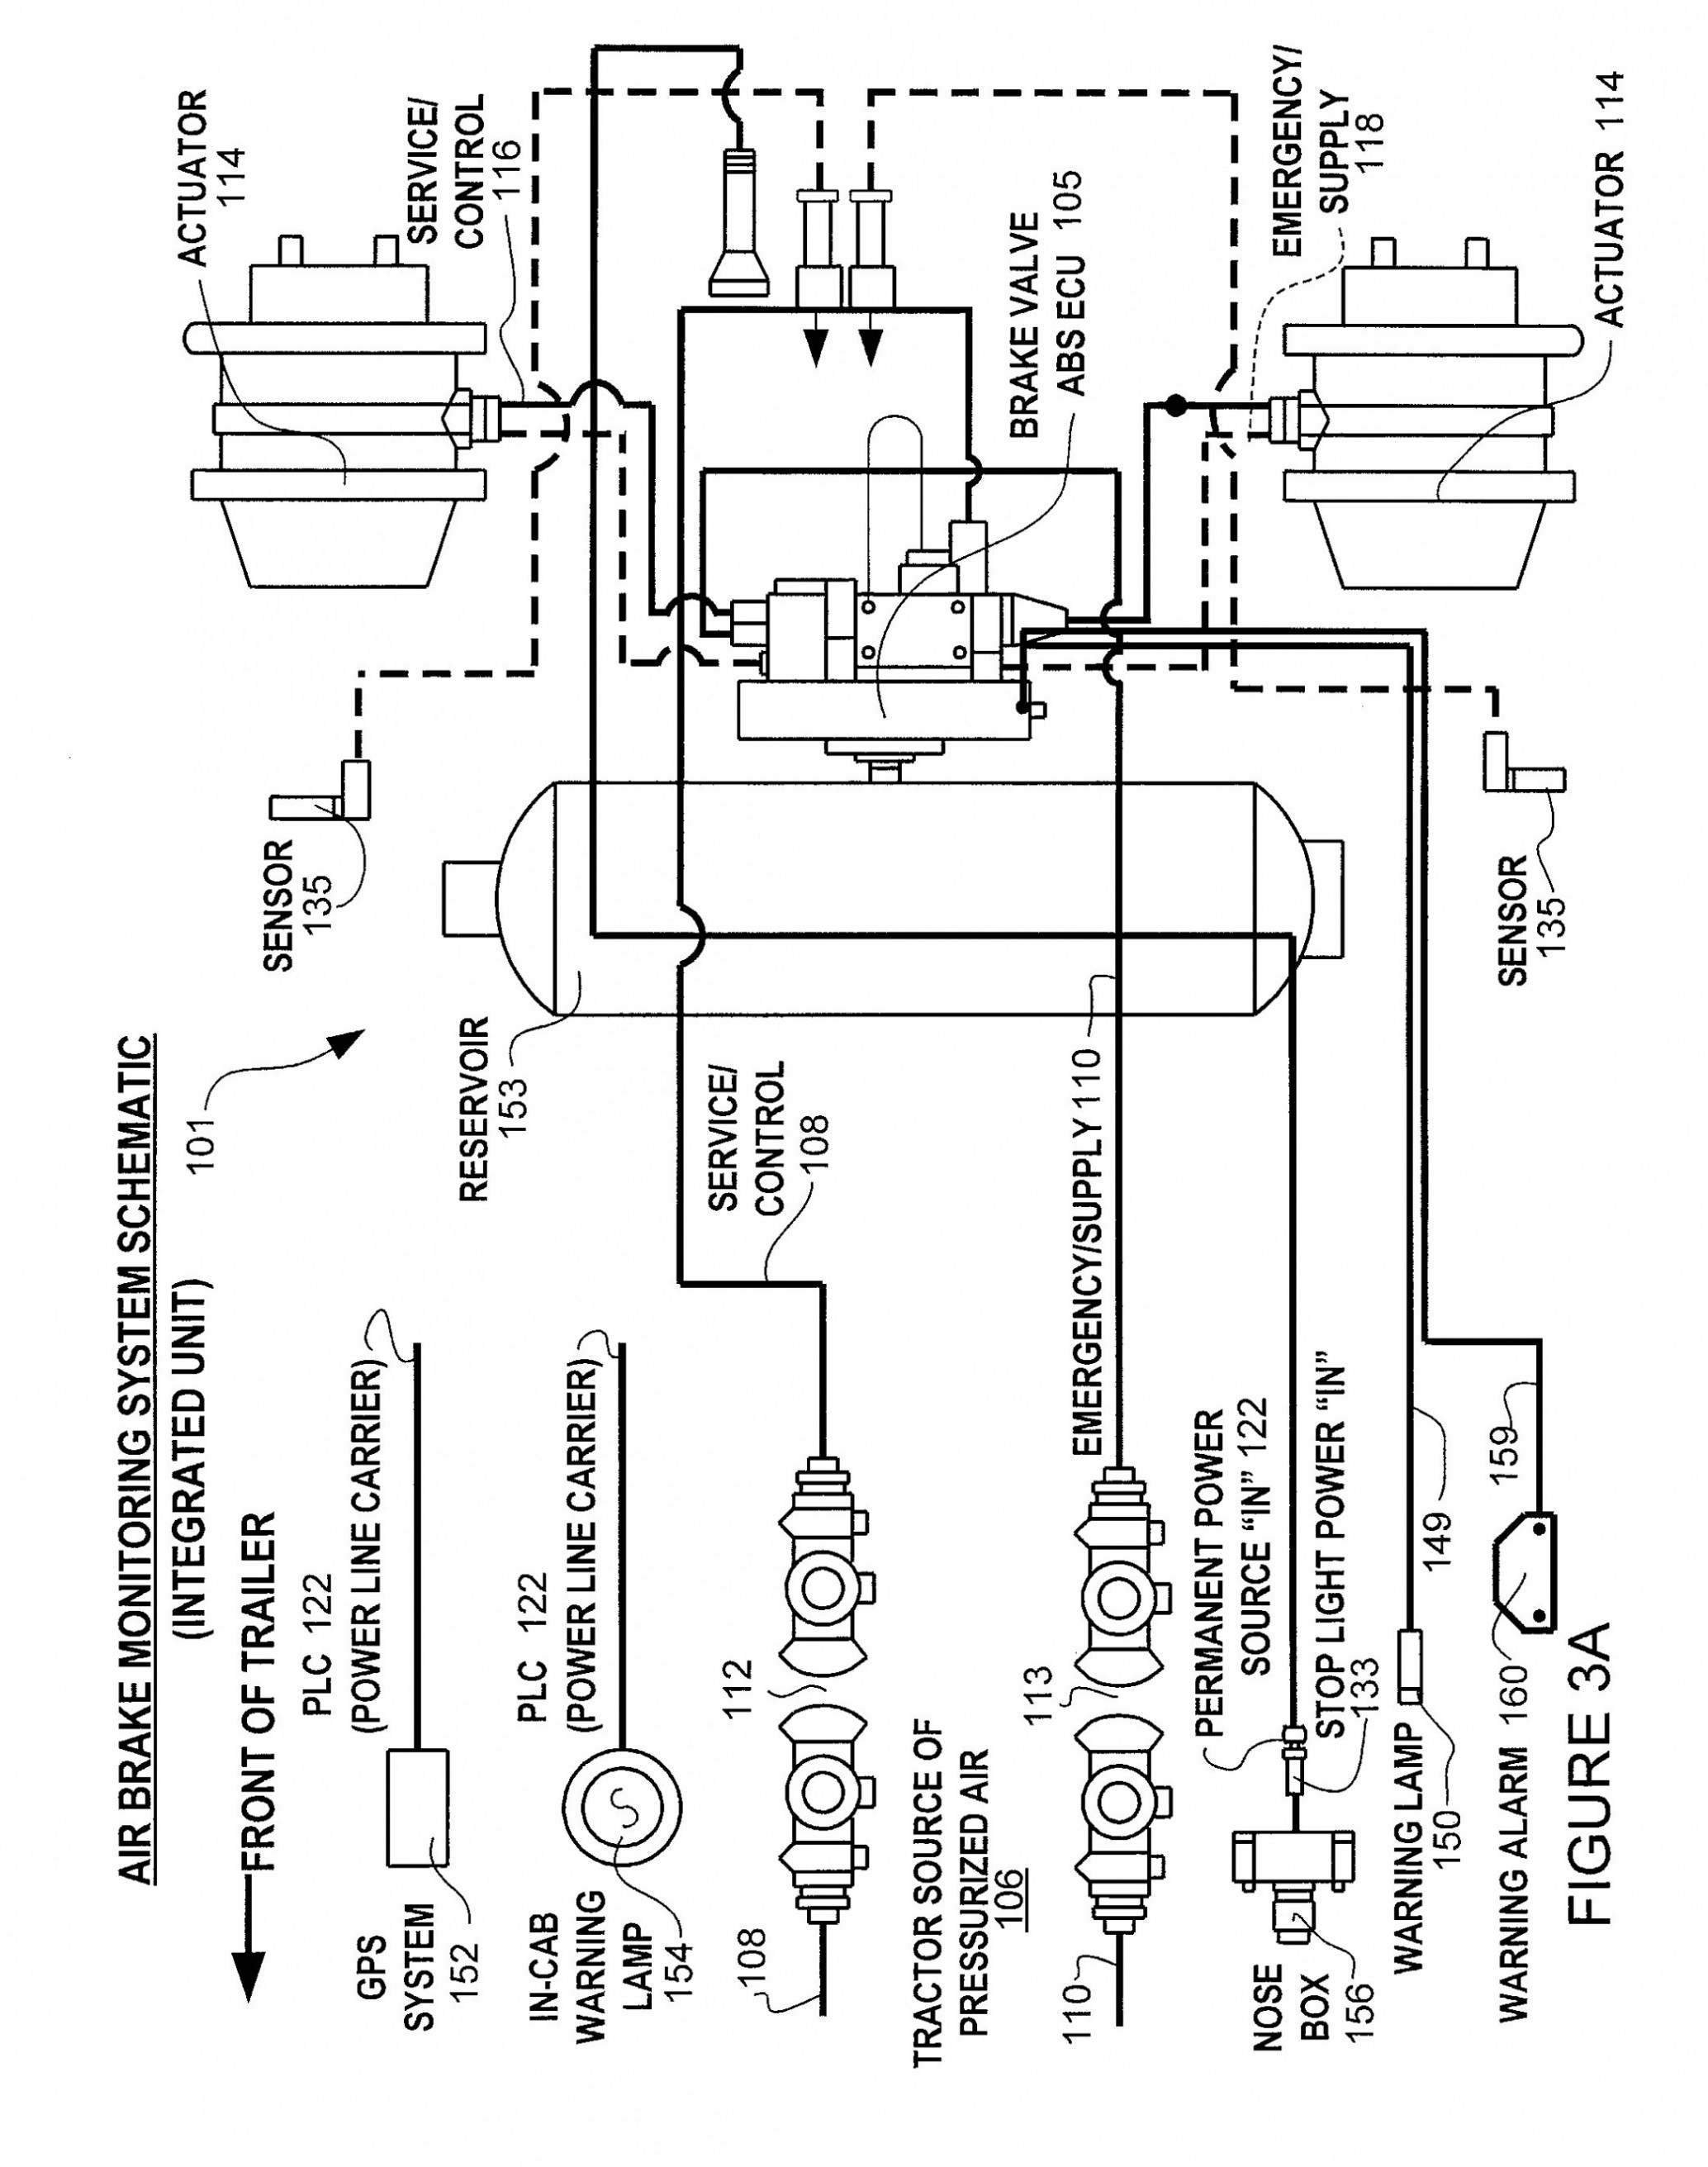 Ford Proportioning Valve Diagram 2002 ford F250 Brake Line Diagram Automotive Block Diagram • Of Ford Proportioning Valve Diagram